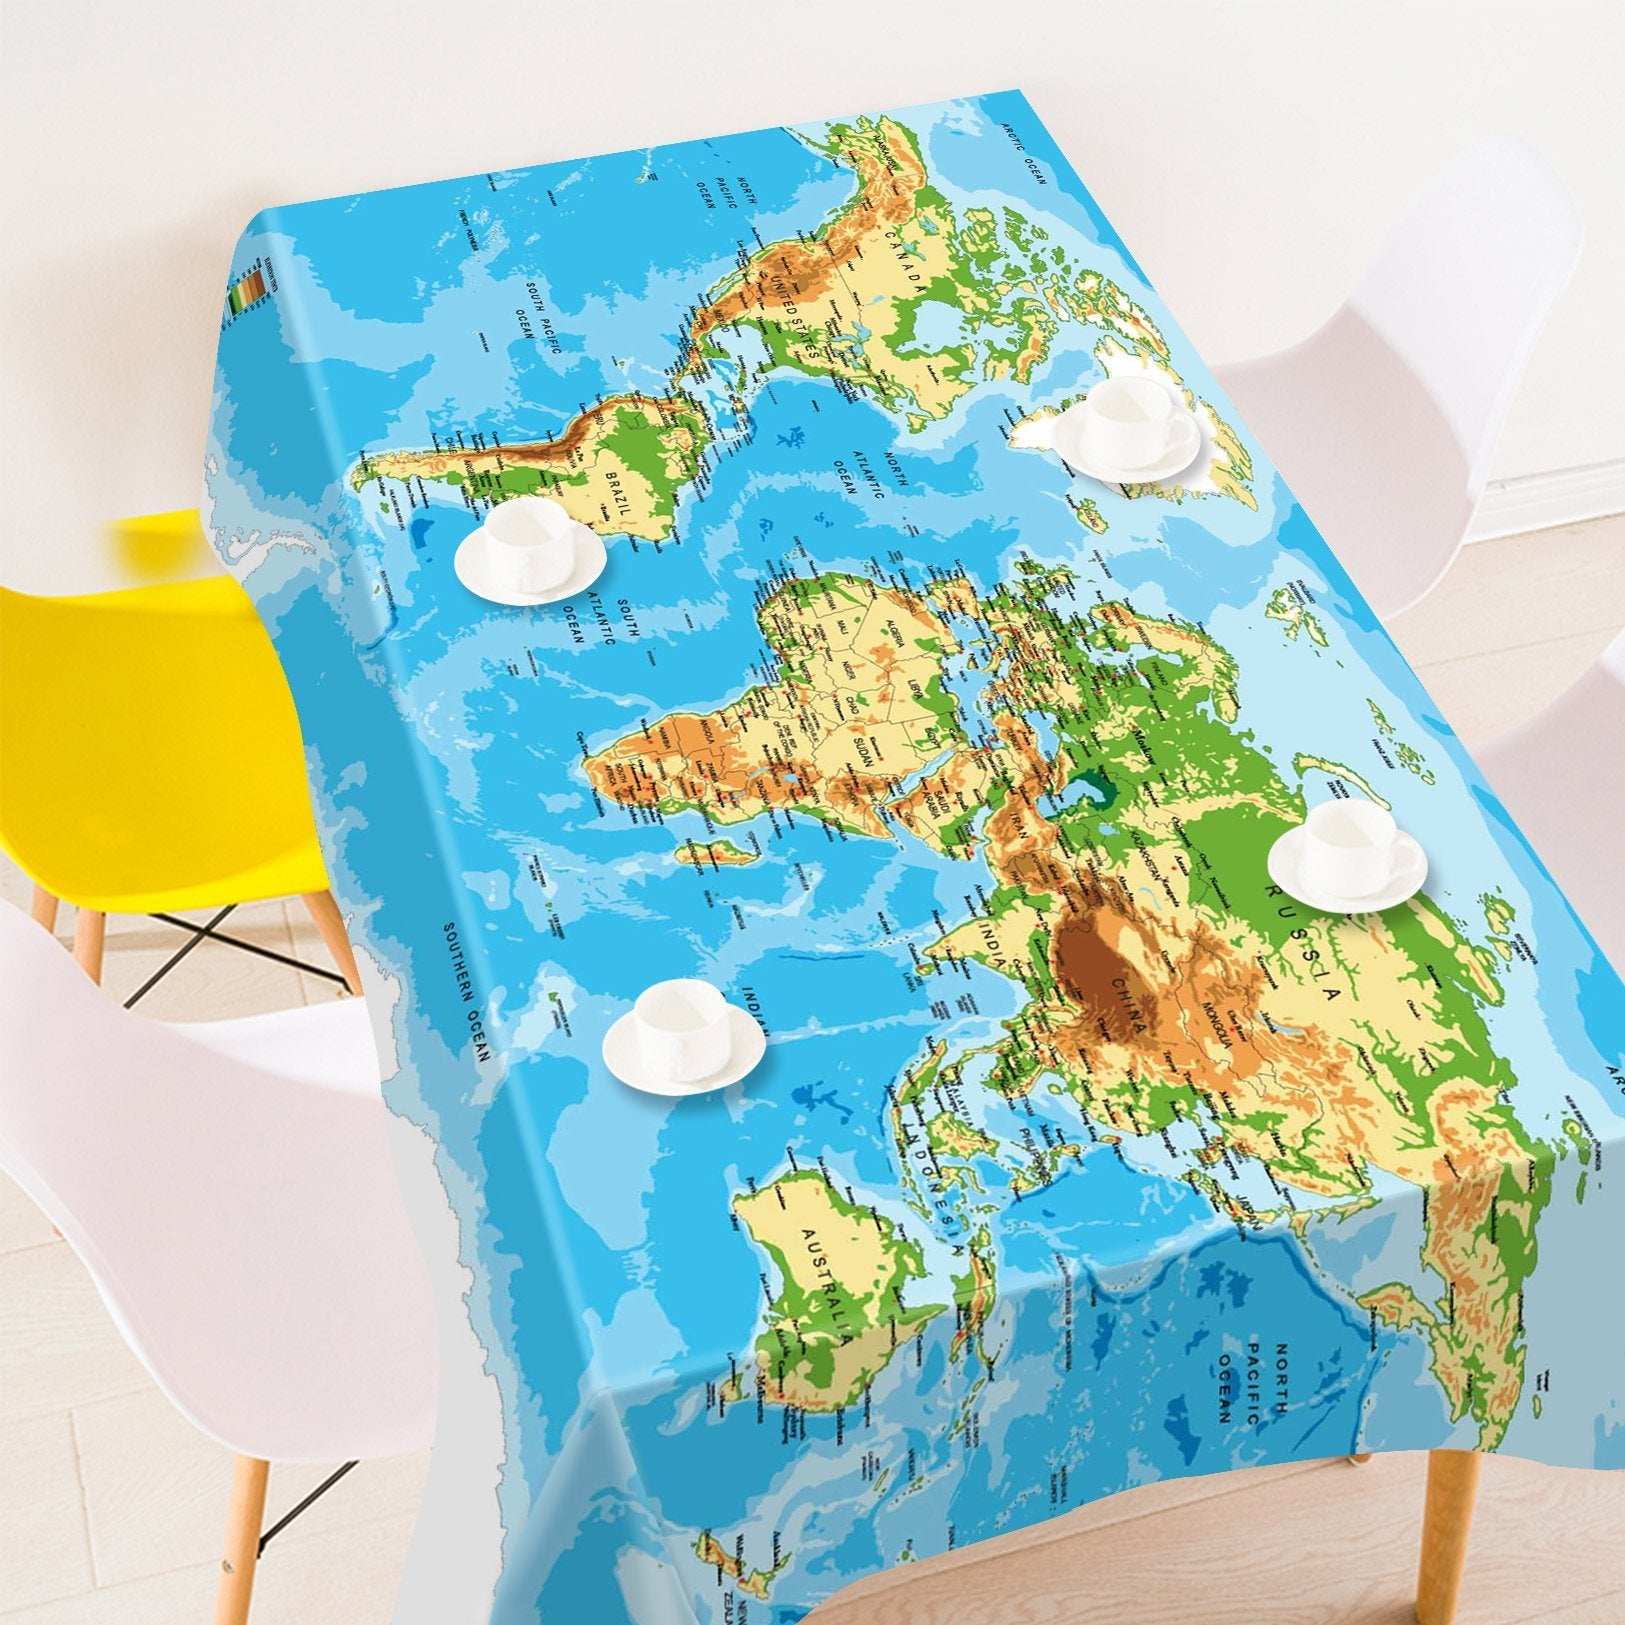 3d detailed world map 687 tablecloths aj wallpaper 3d detailed world map 687 tablecloths gumiabroncs Choice Image